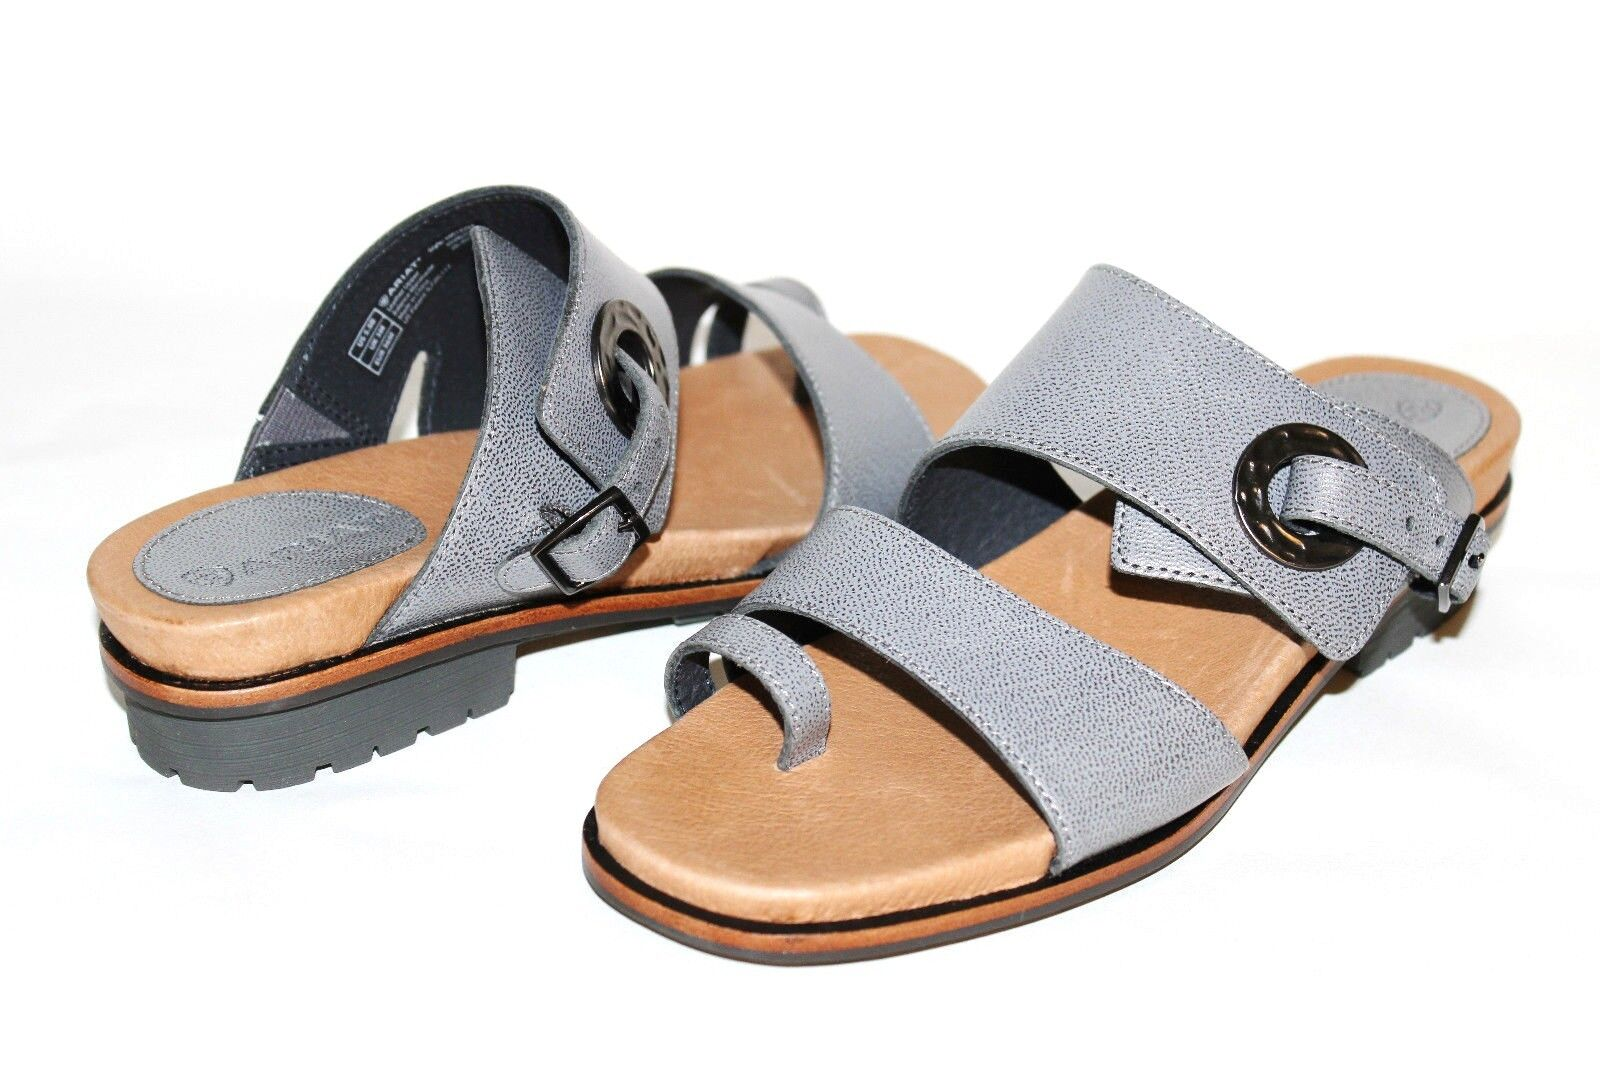 ARIAT Kailey Pewter Premium Leather Toe-Ring Comfort Sandal 5.5 B NEW  L@@K G2